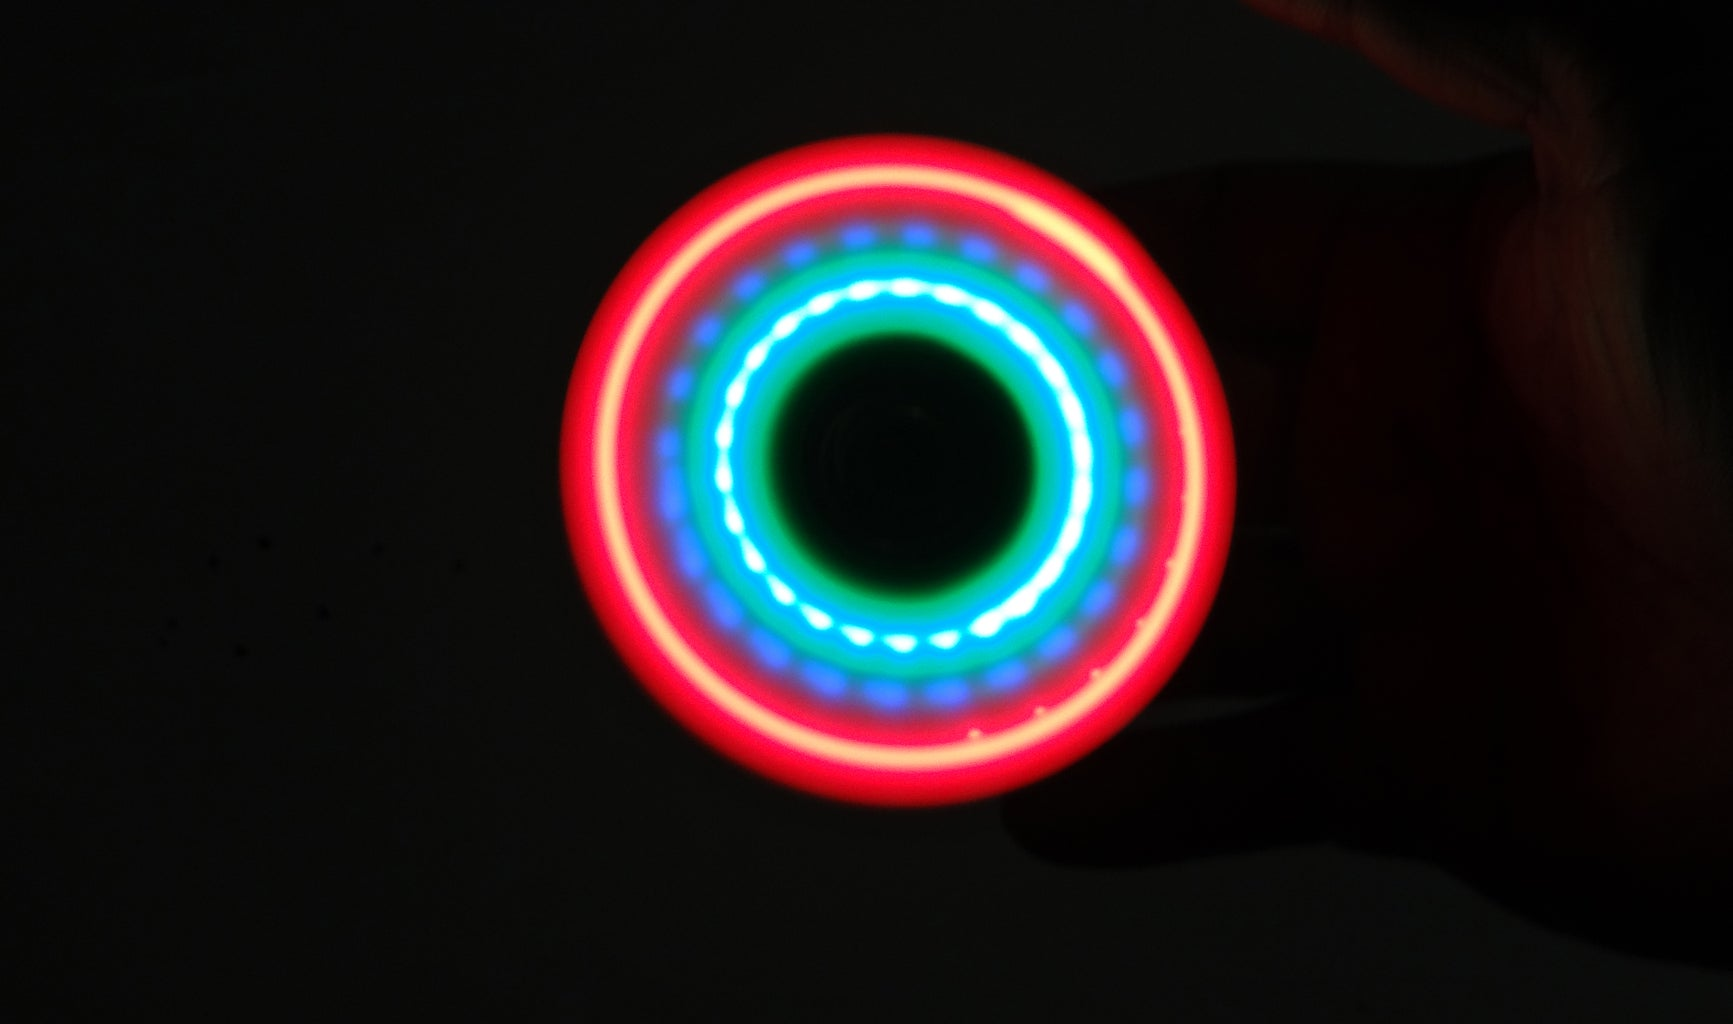 LED Fidget Spinner - How to Increase Spinning Time?